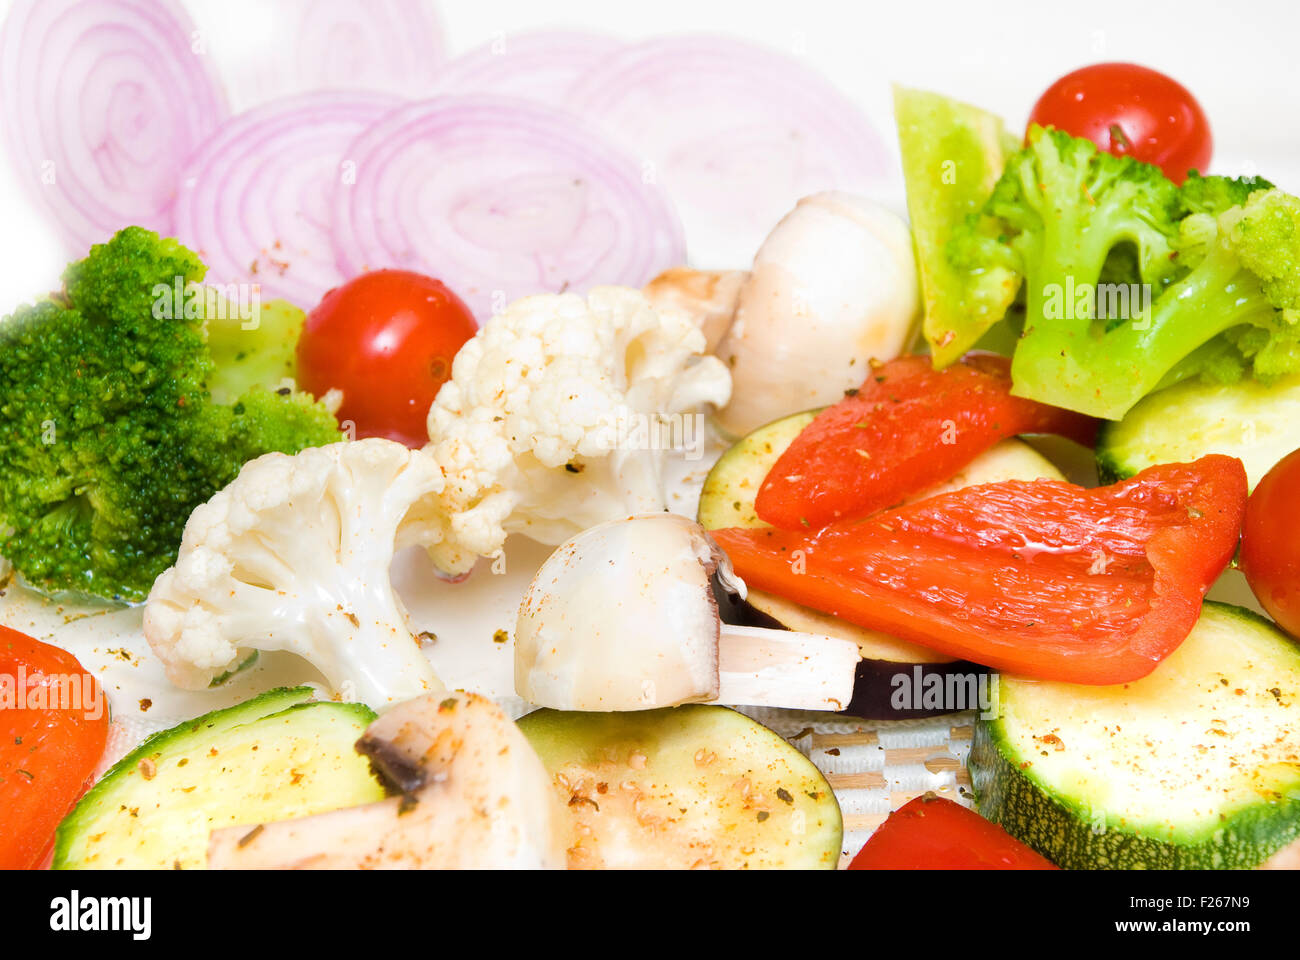 Many small sliced colorful vegetables - Stock Image